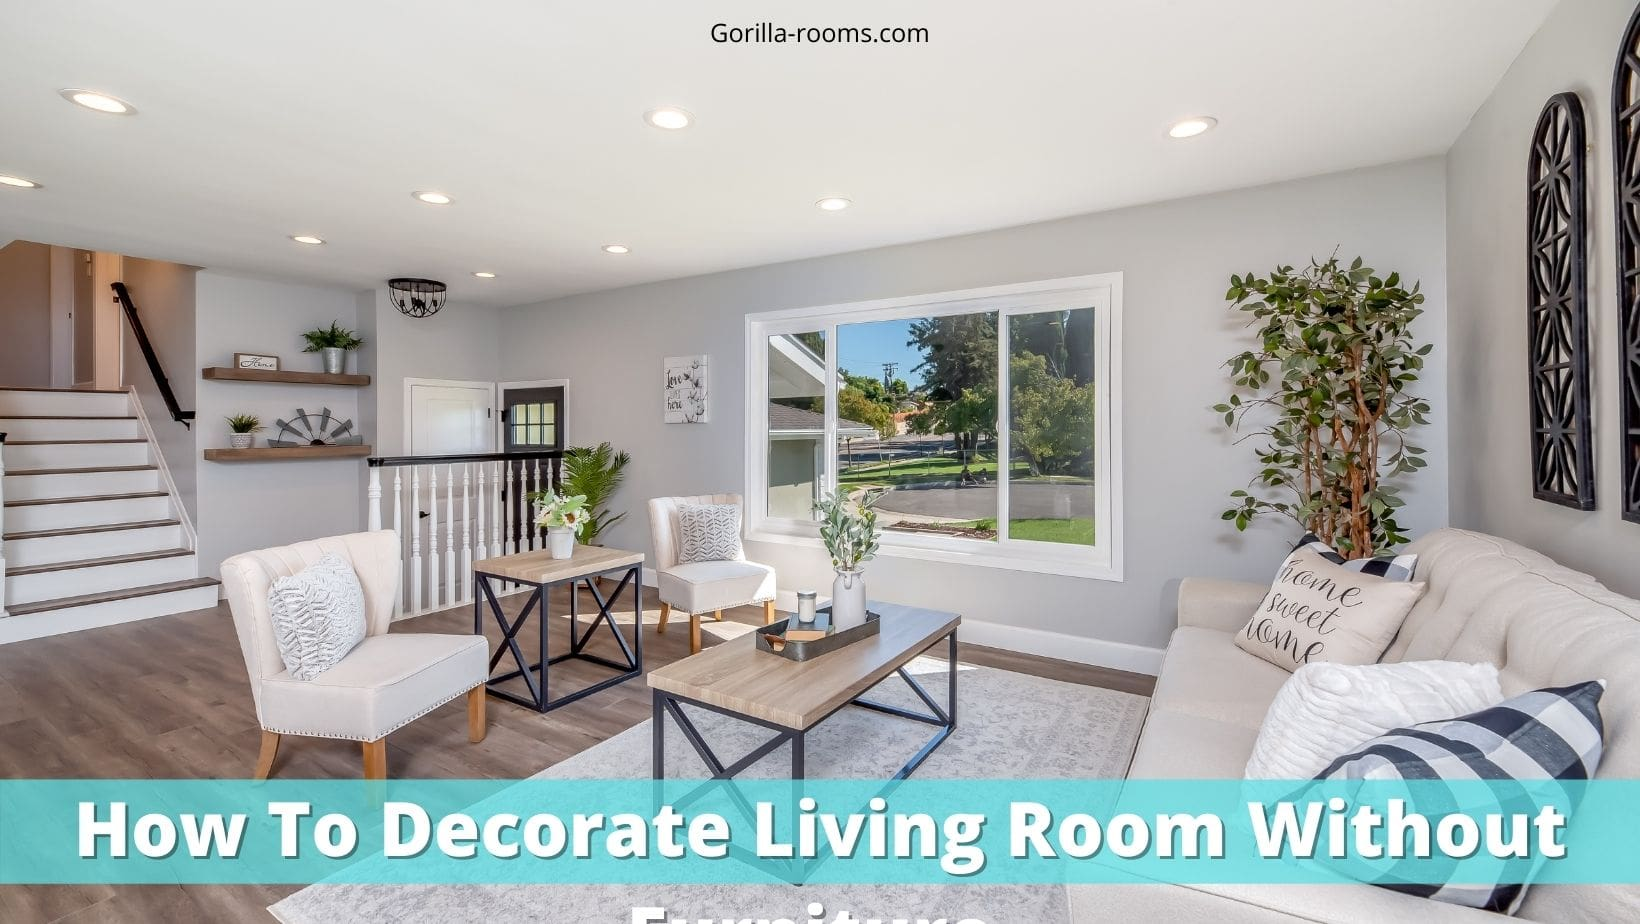 How To Decorate Living Room Without Furniture